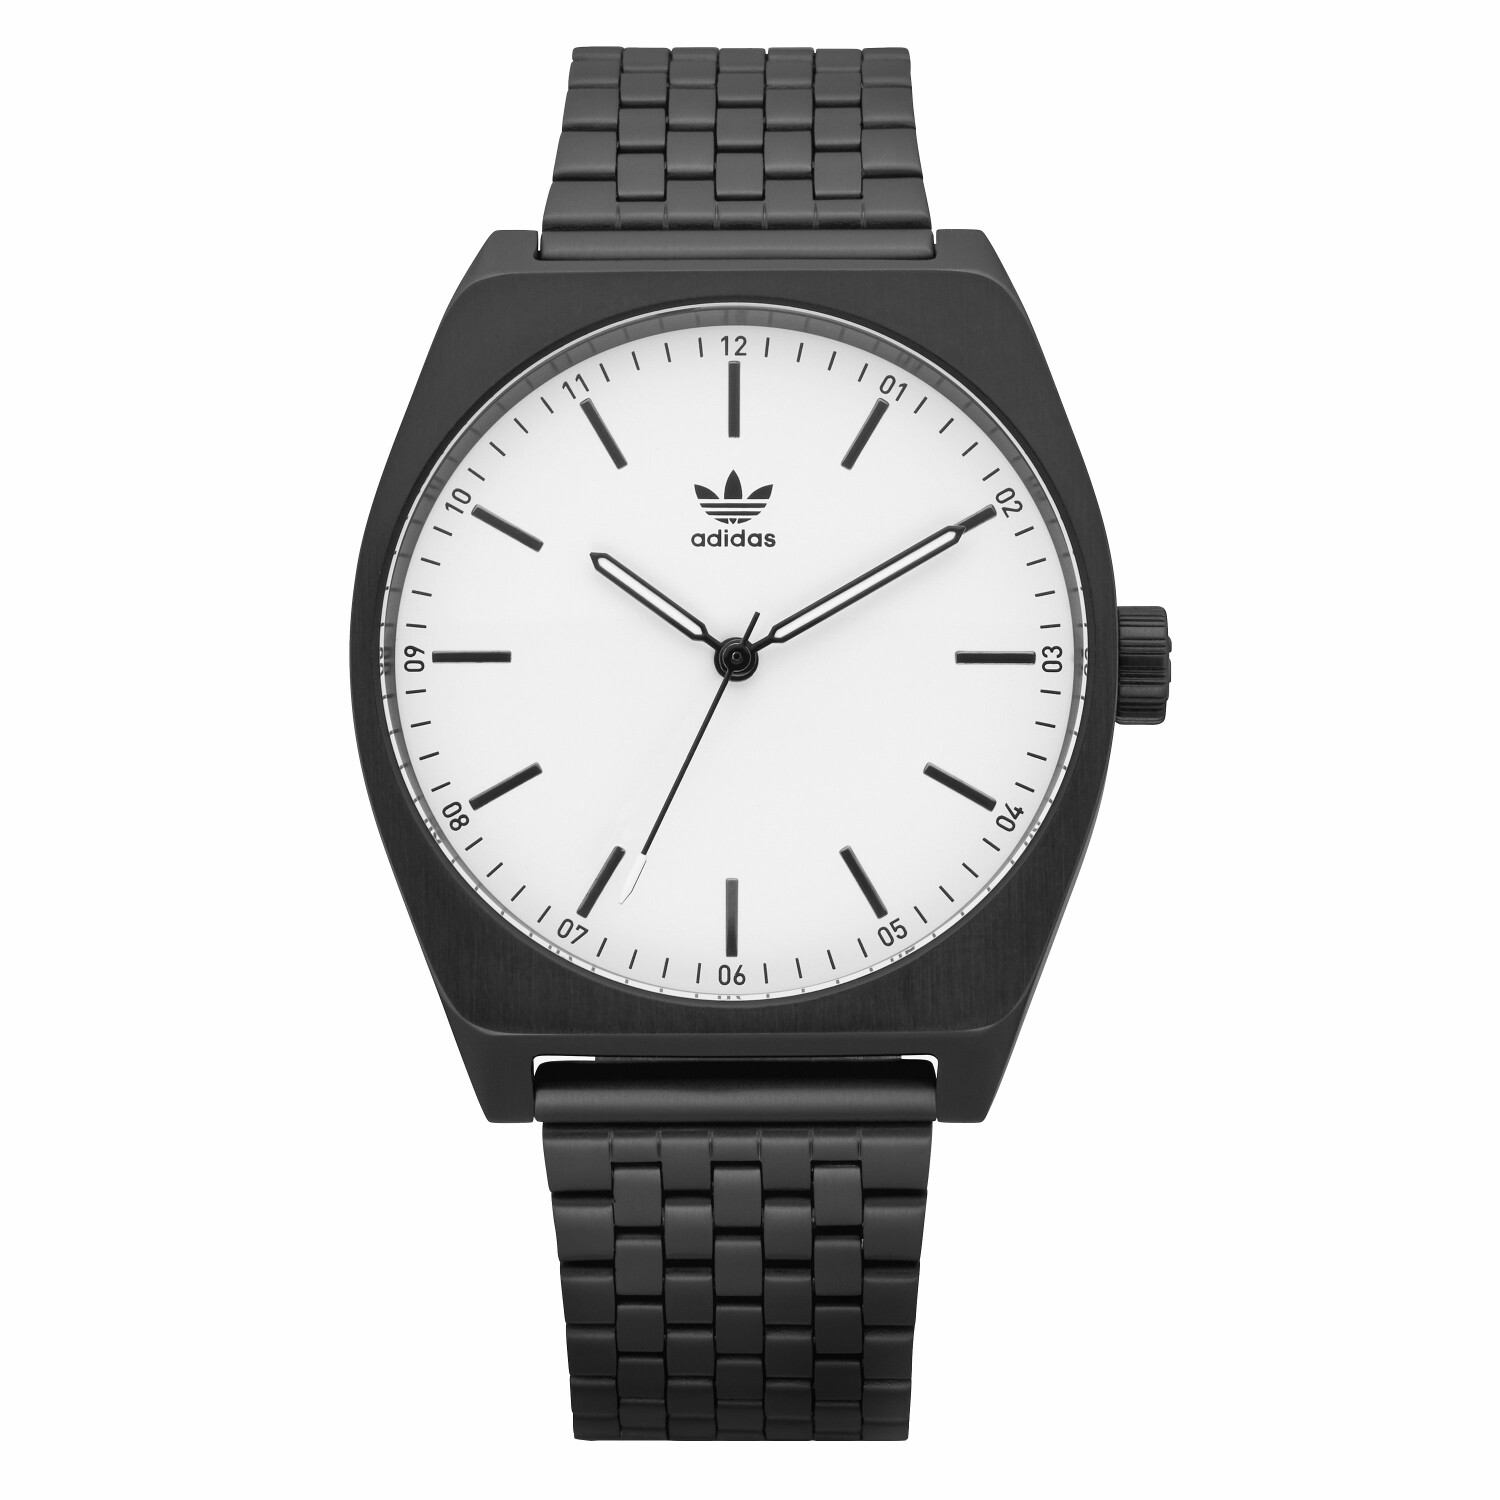 Adidas Mens Process M1 Z02 005-00 Black Stainless-Steel Quartz Fashion Watch